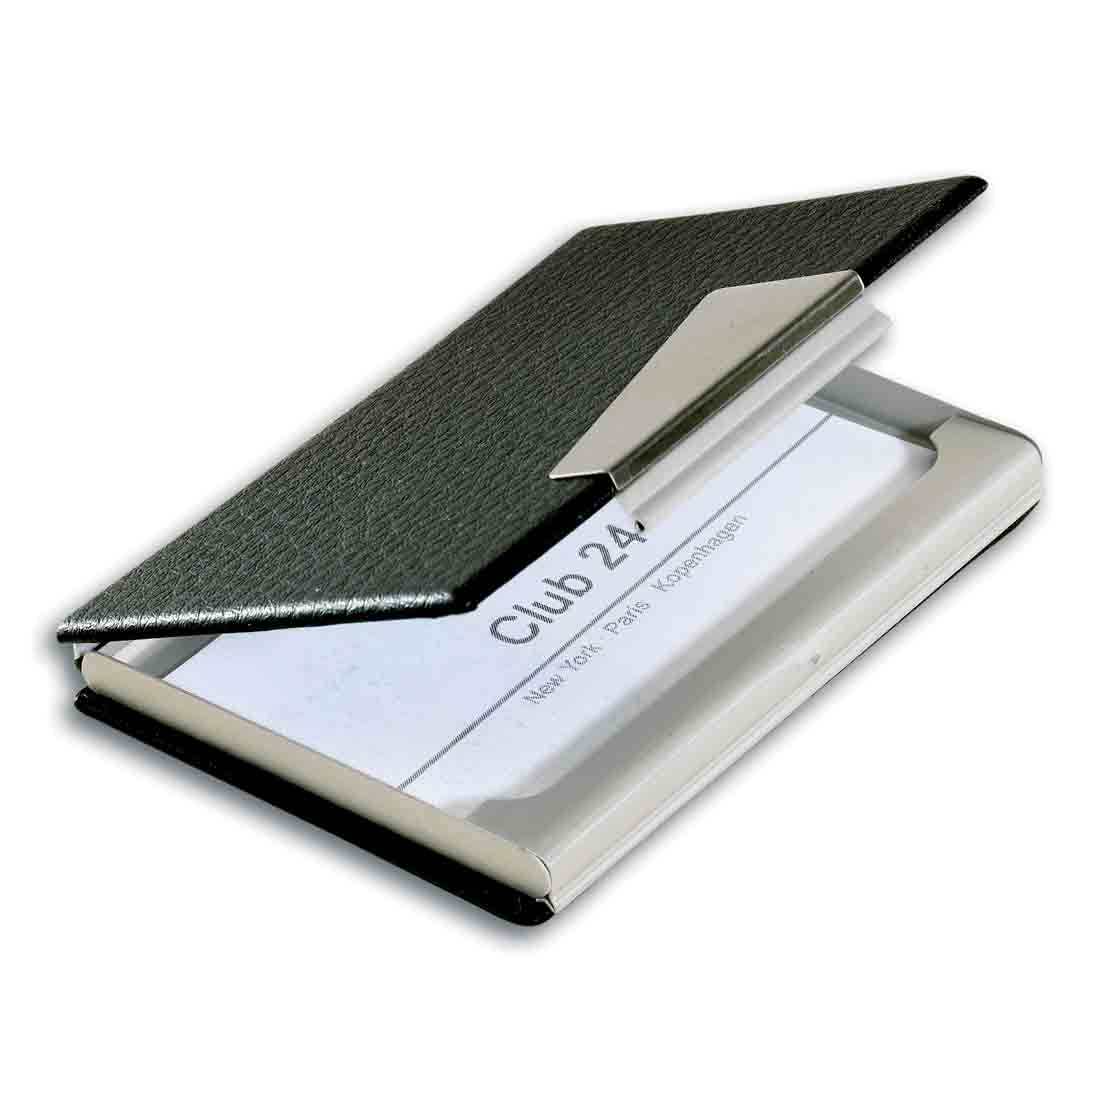 Elegant business card holder ns-301